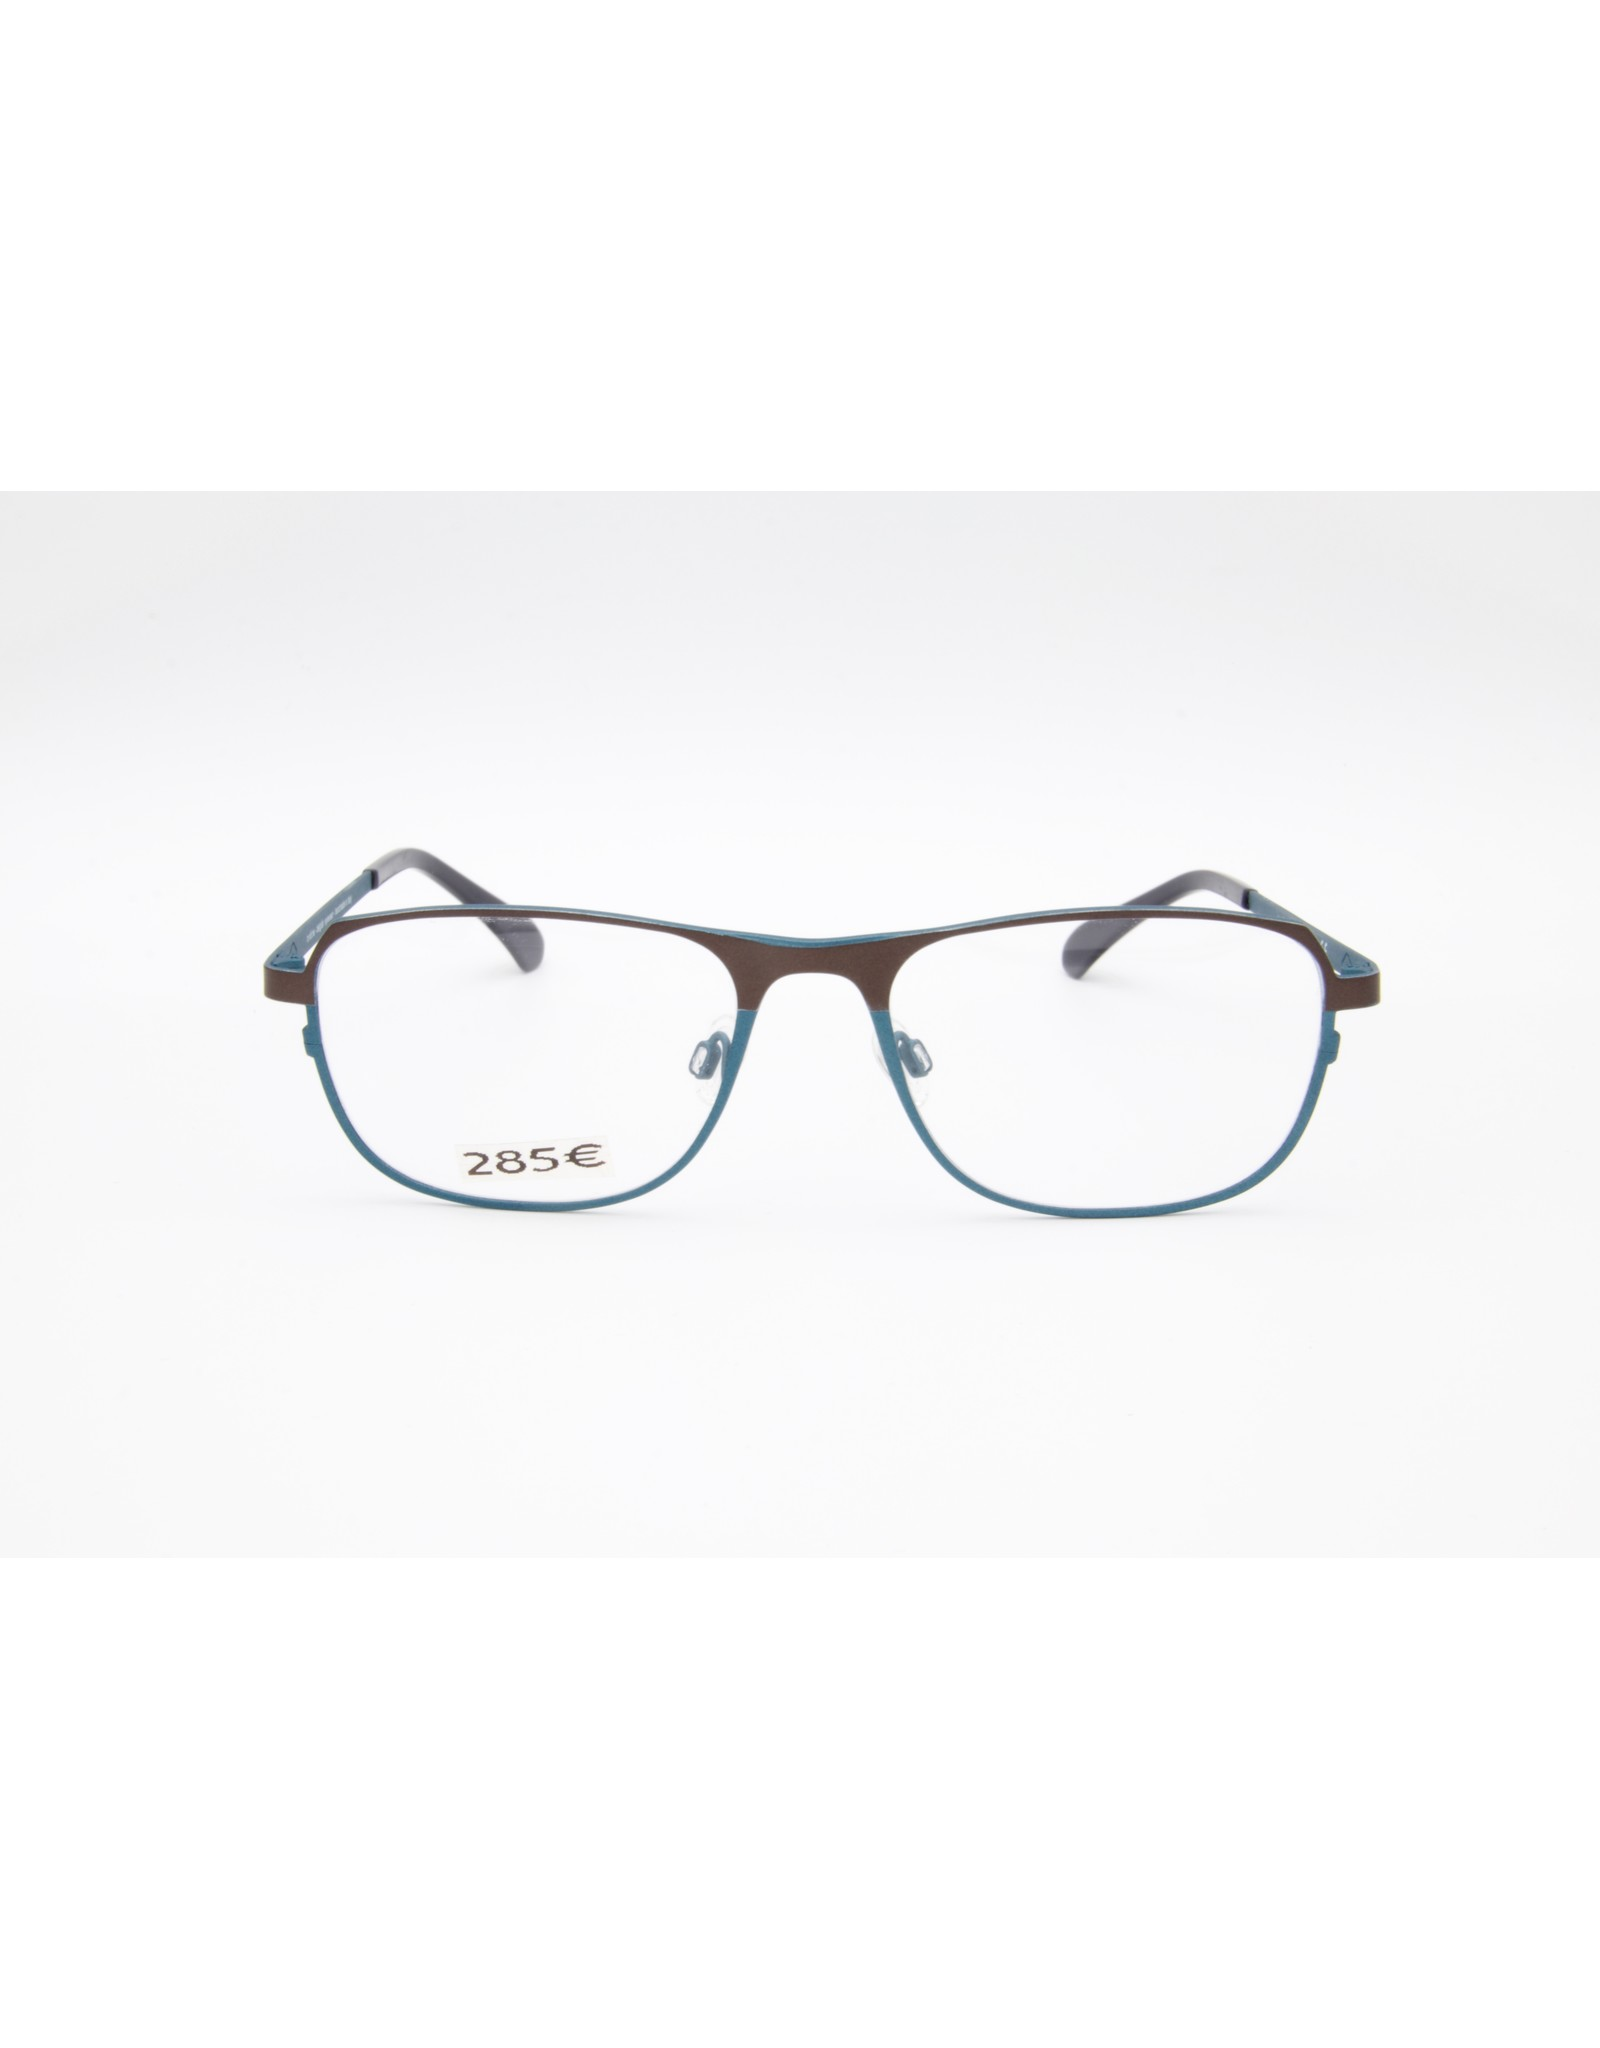 Binoche Binoche 193 c04 (brown-blue)